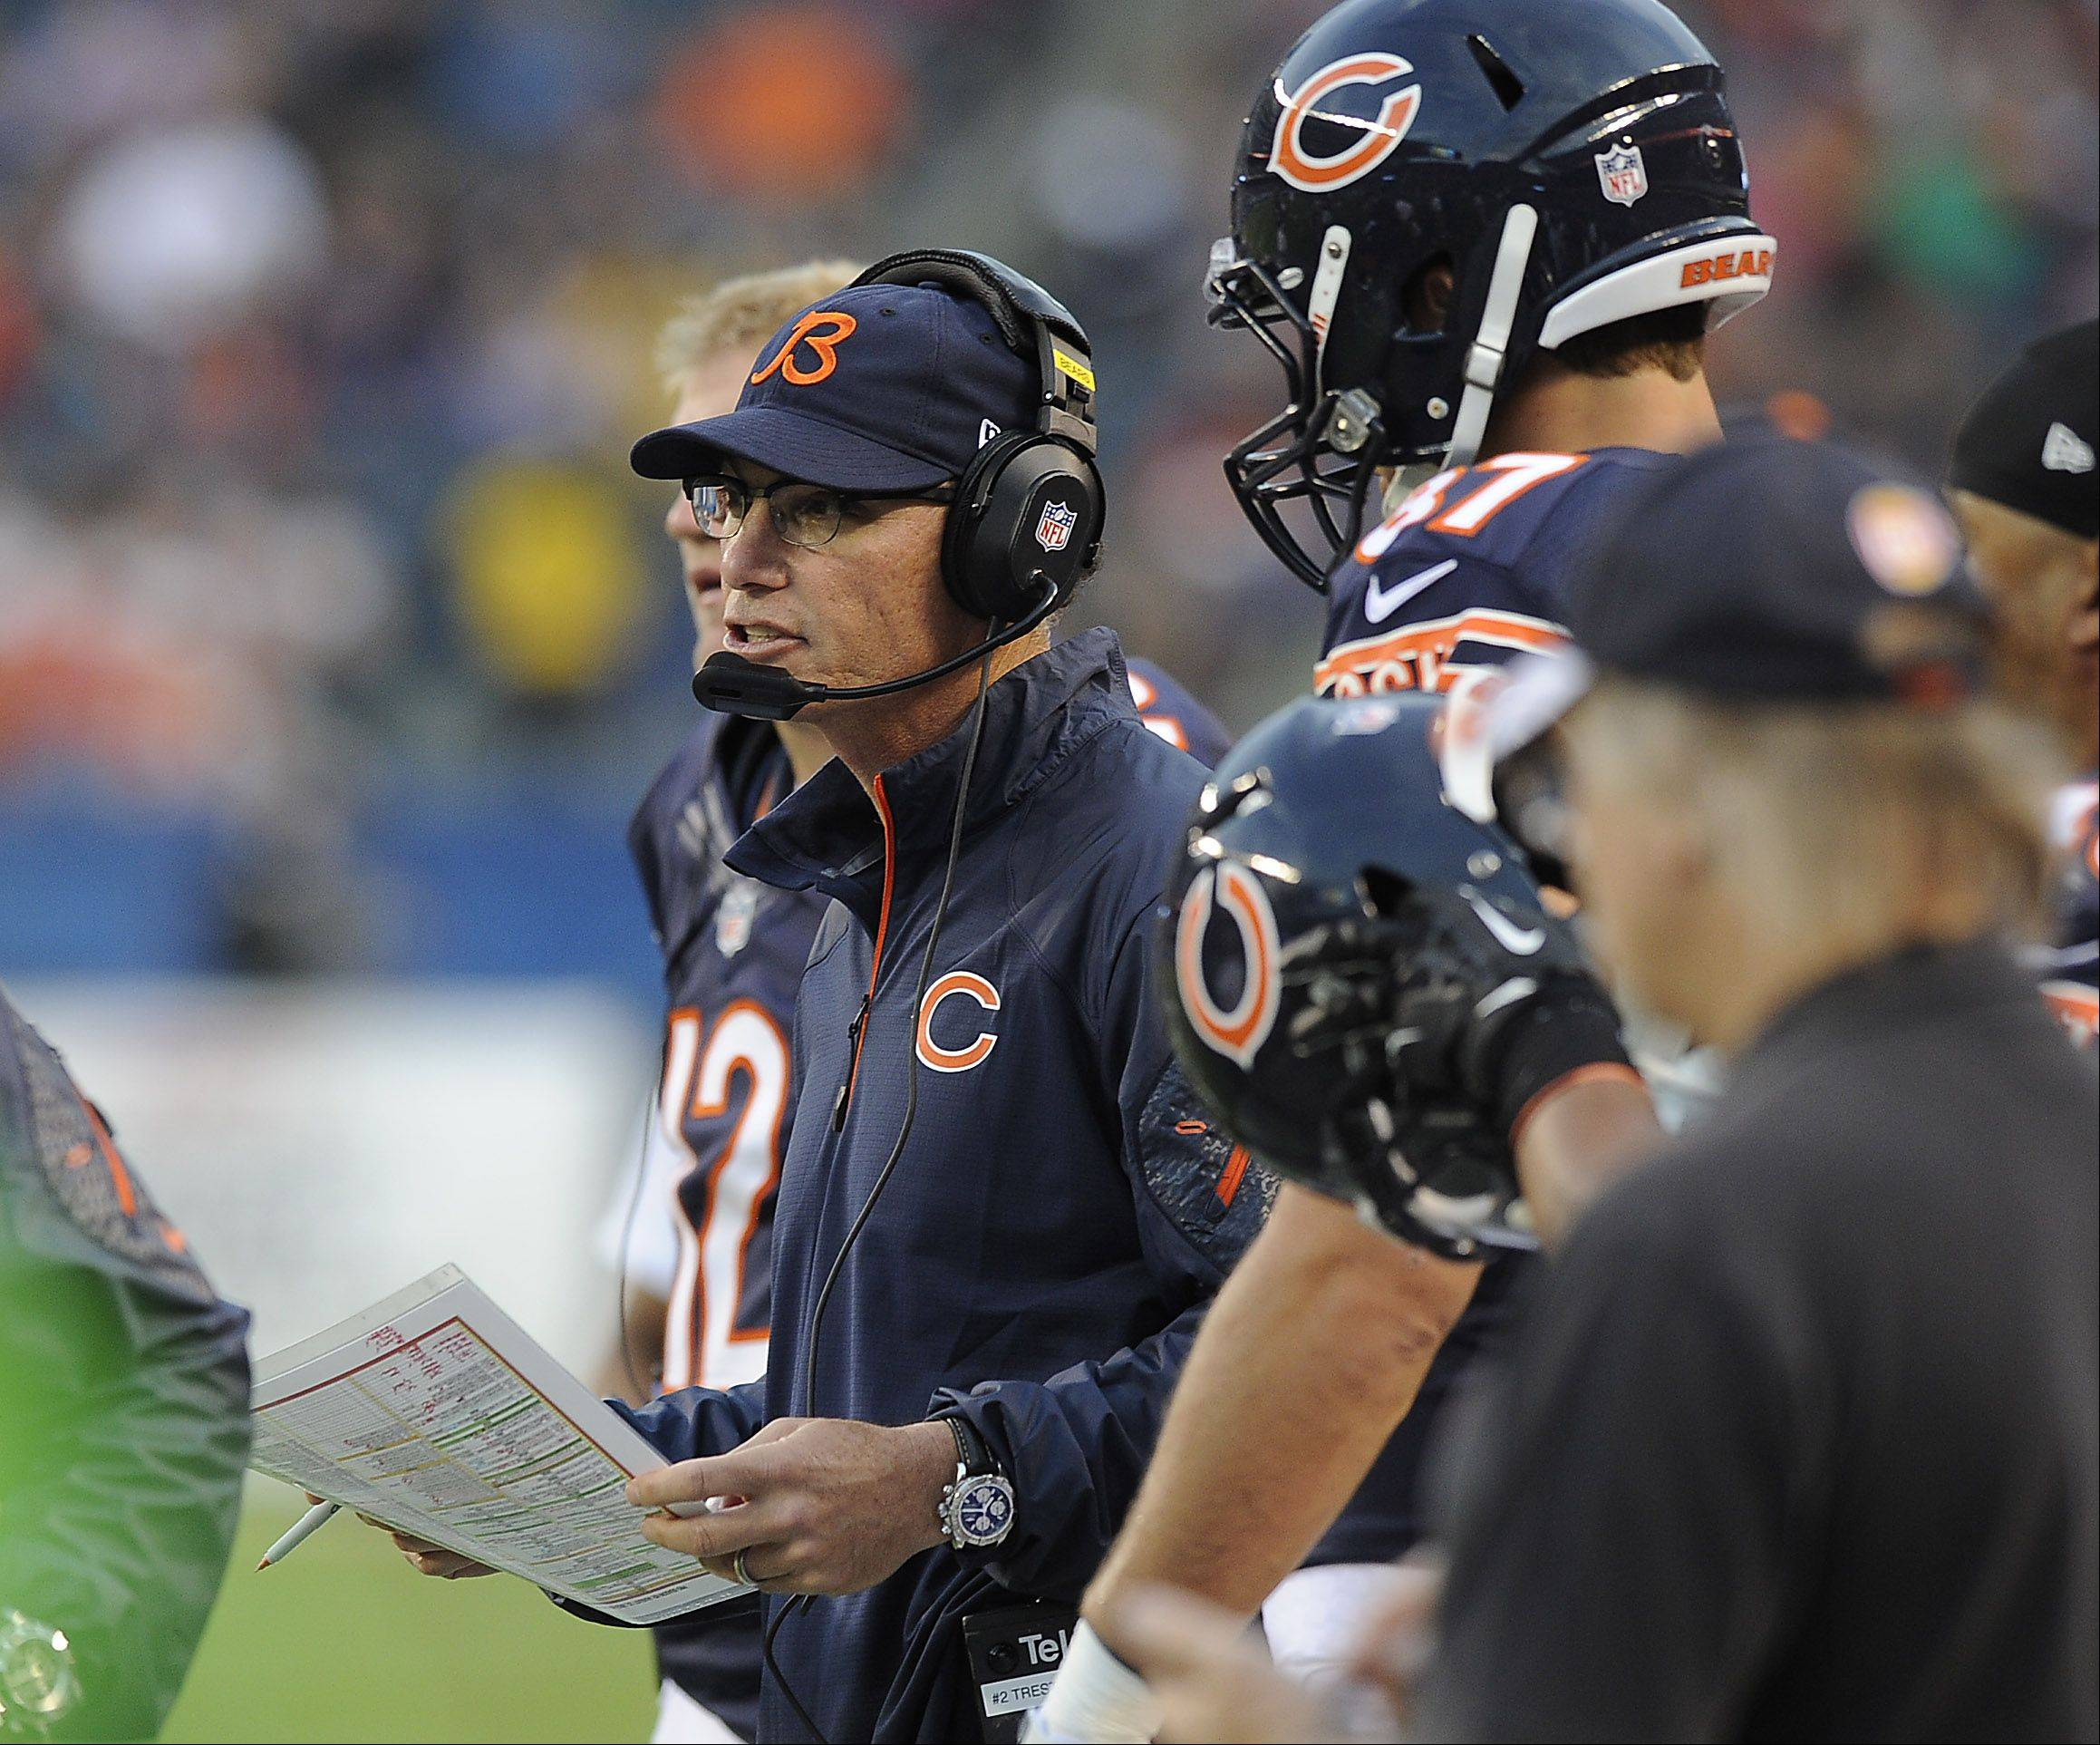 The Bears' Marc Trestman won't be reflecting too much Sunday on his first game as an NFL head coach because he knows he has a job to do.